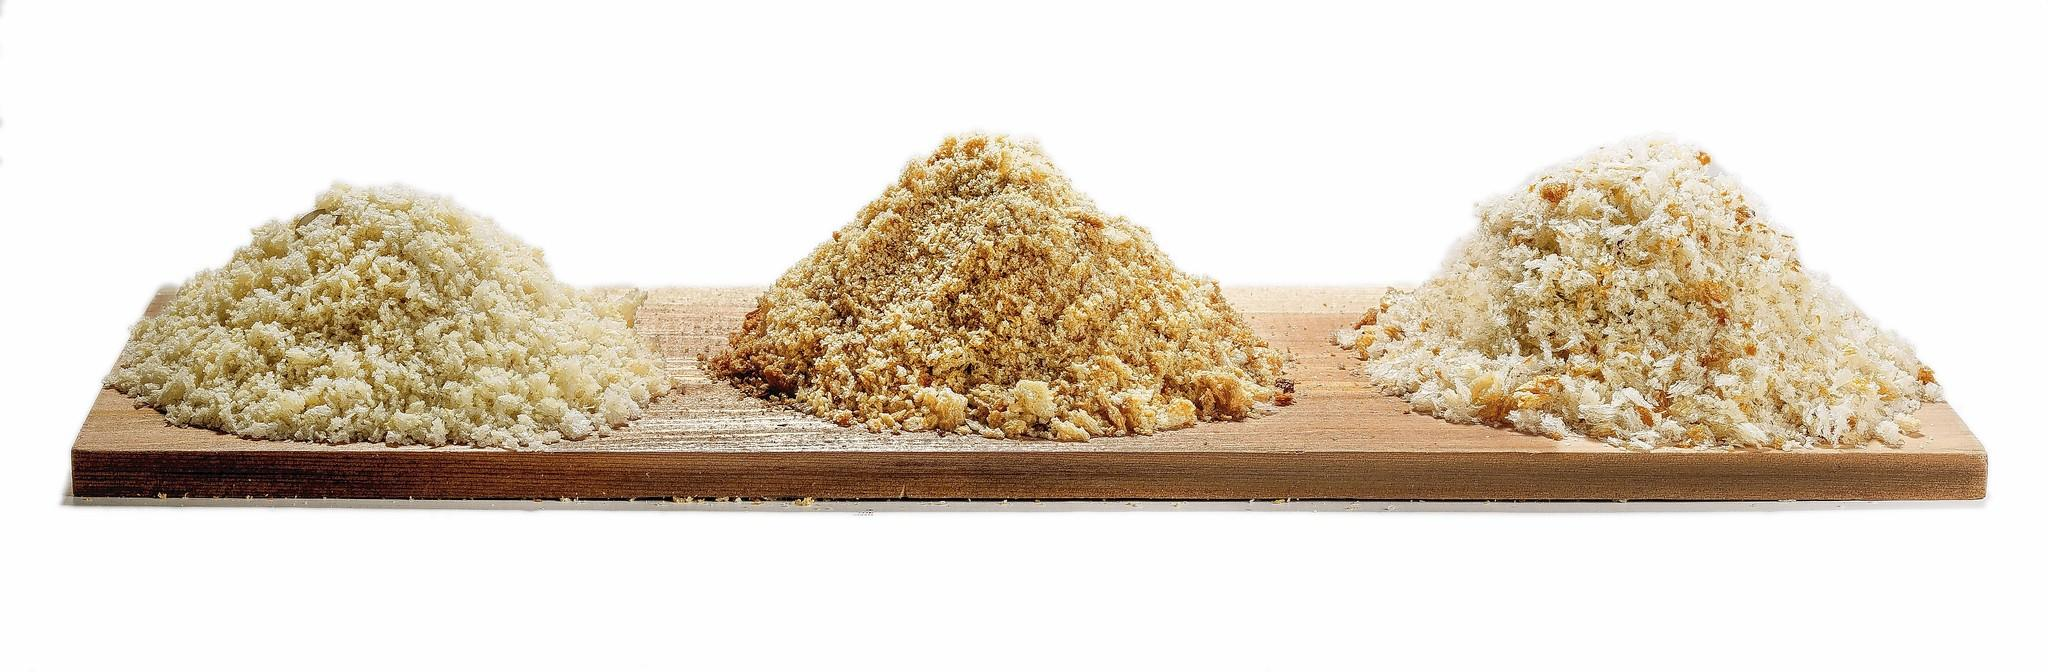 Piles of different bread crumbs.